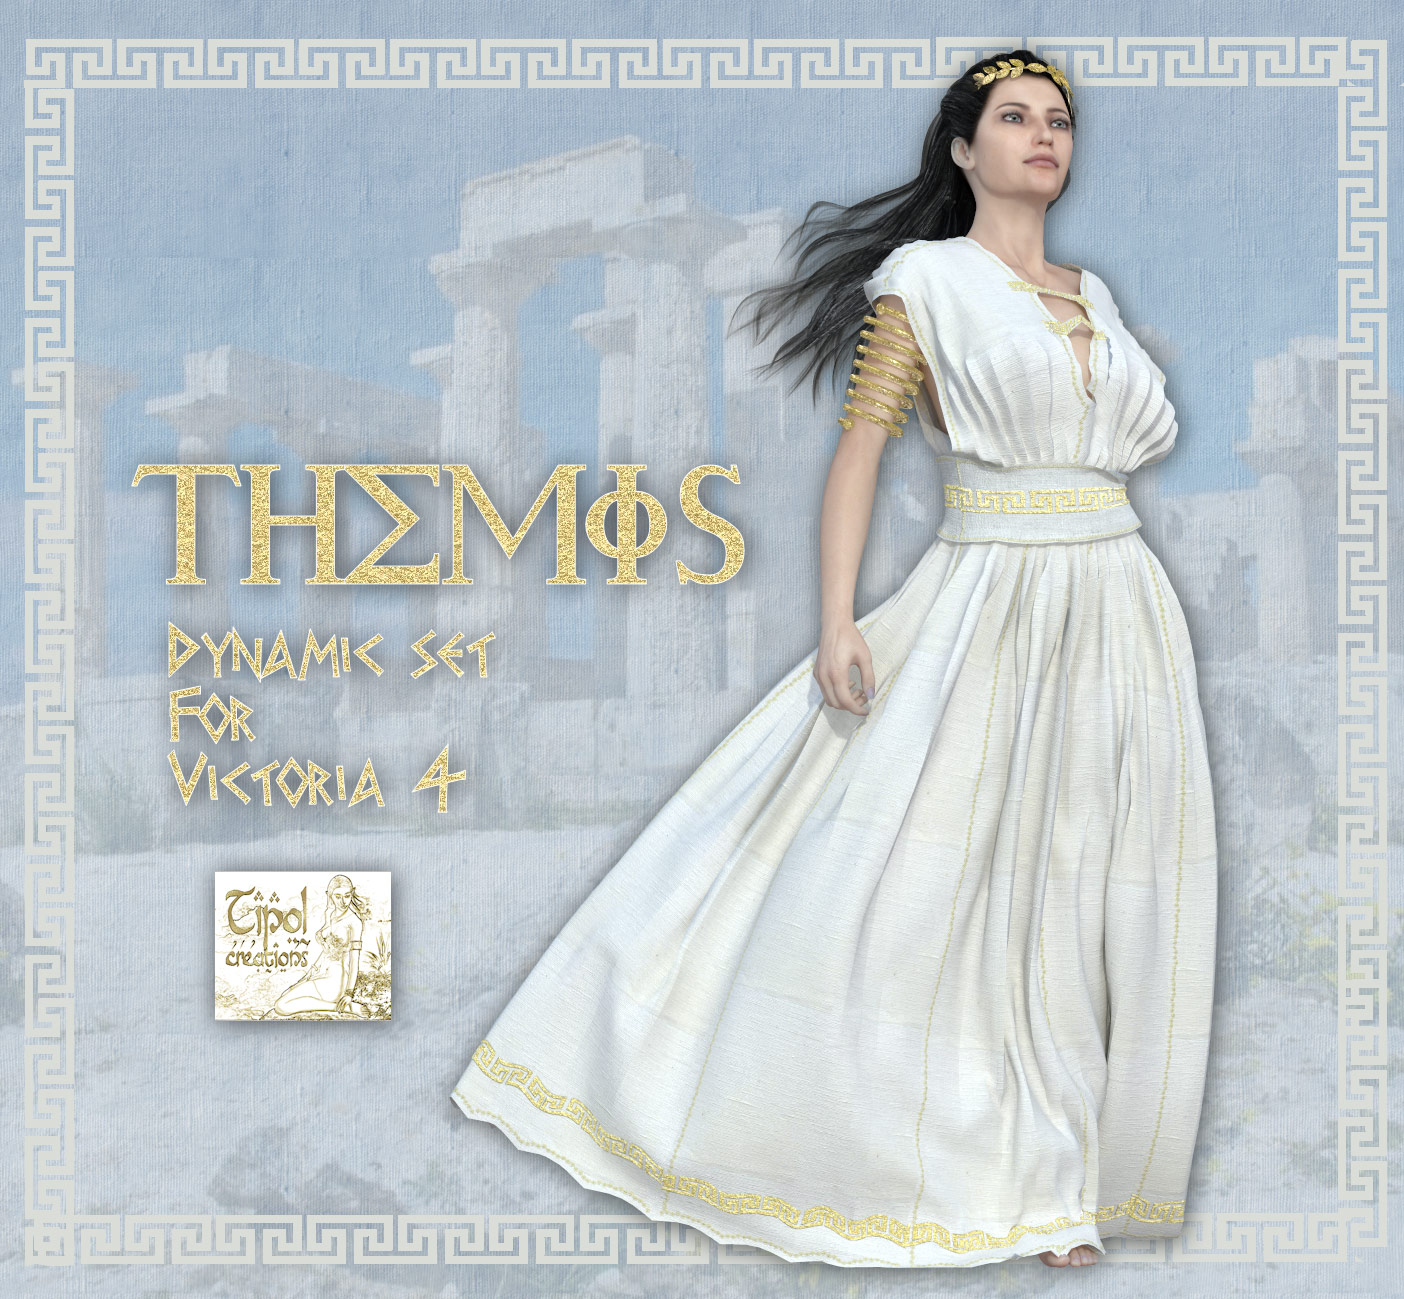 Themis Dynamic set for Victoria 4